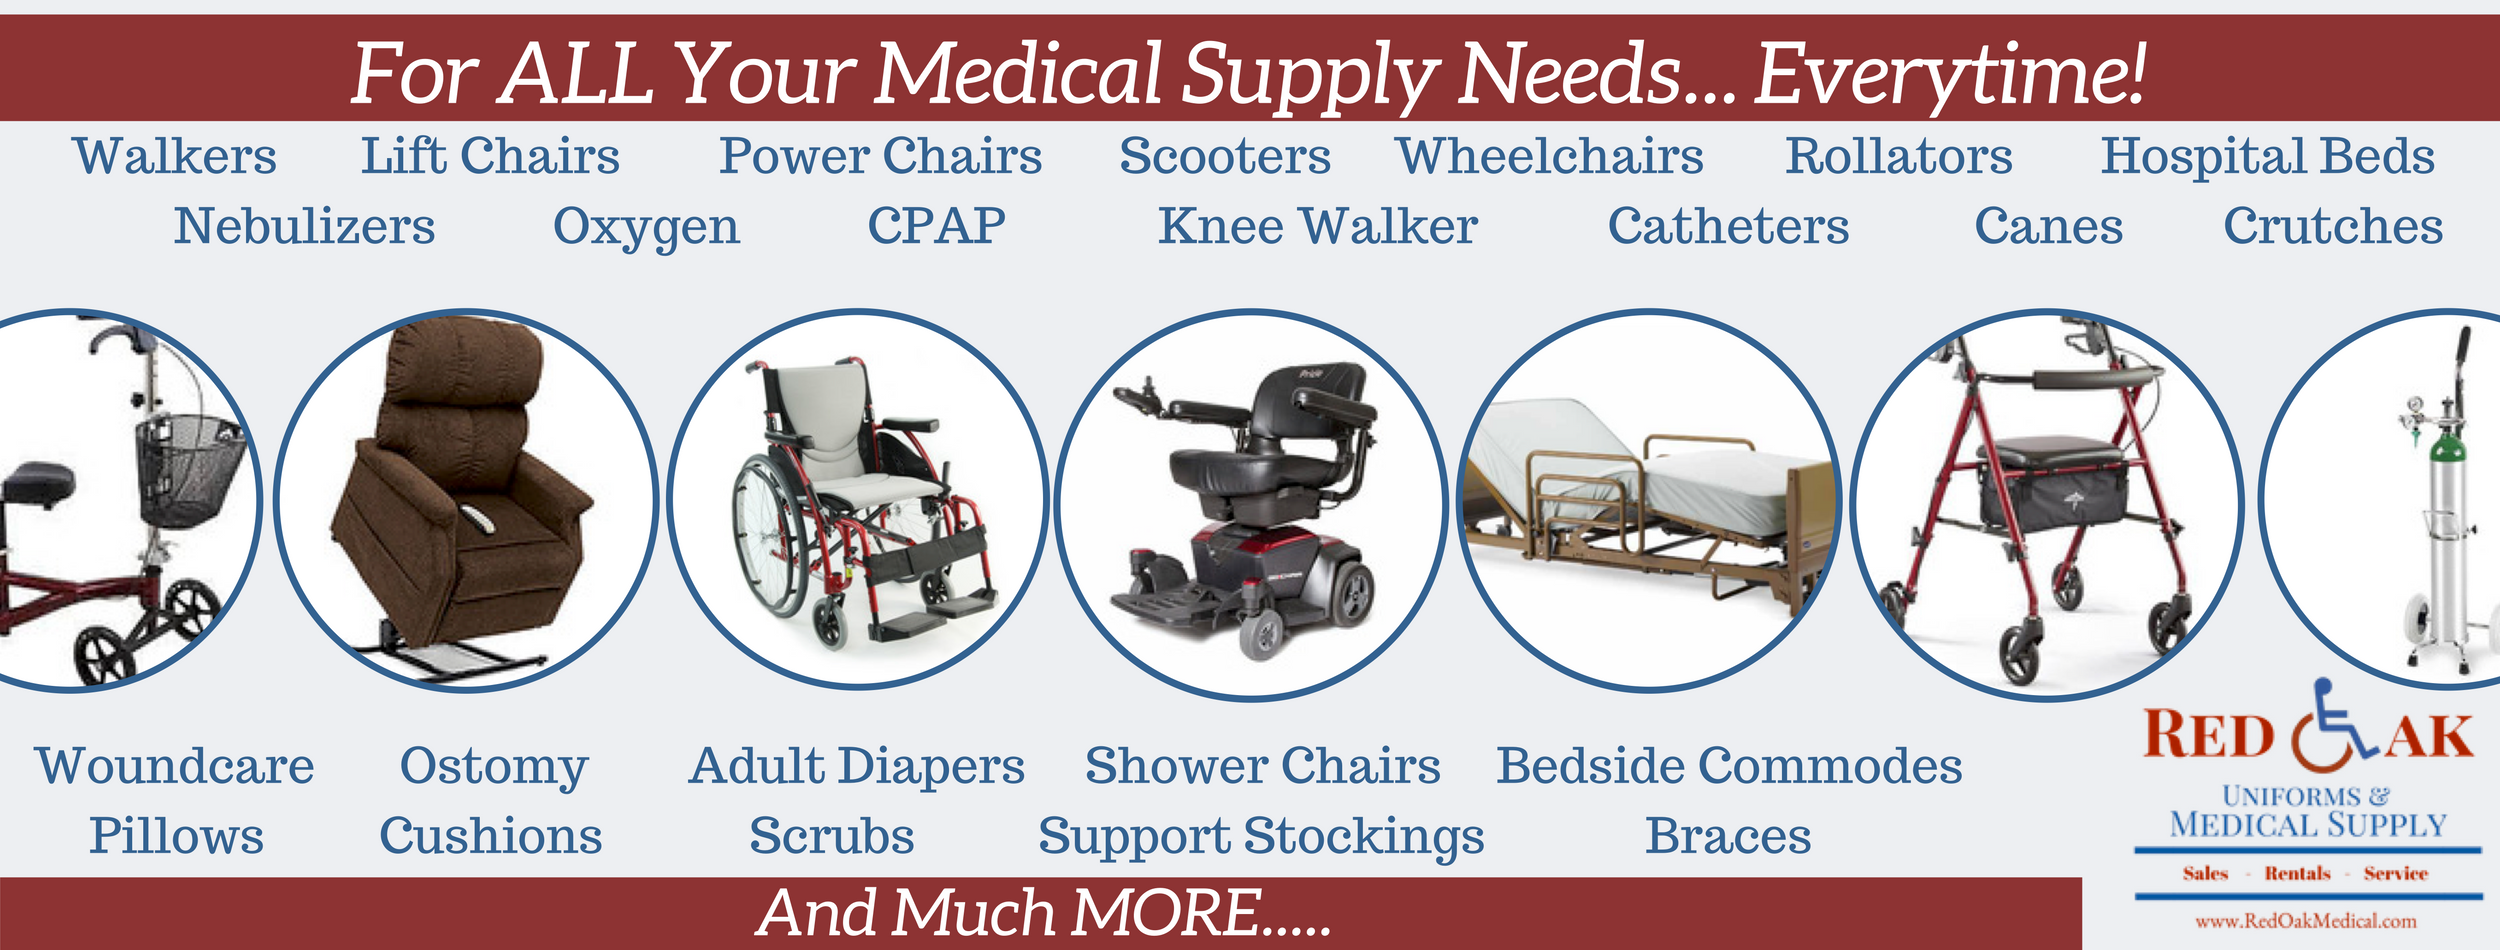 Medical Supply Houston Showroom | Buy-Repair-Rent Medical